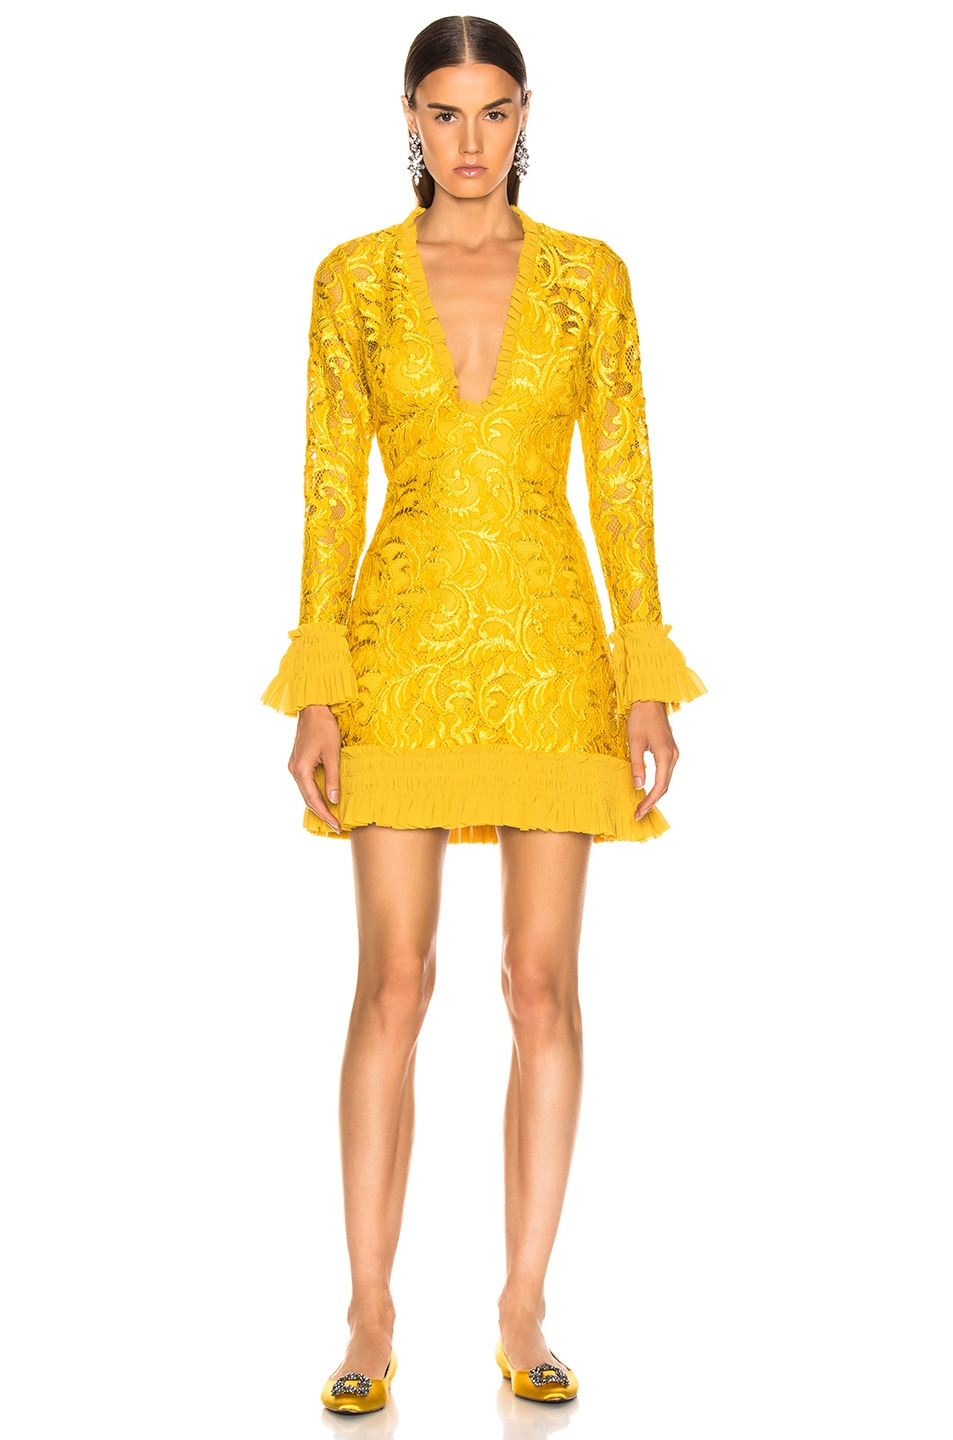 Image 2 of Alexis Nuray Dress in Gold Lace